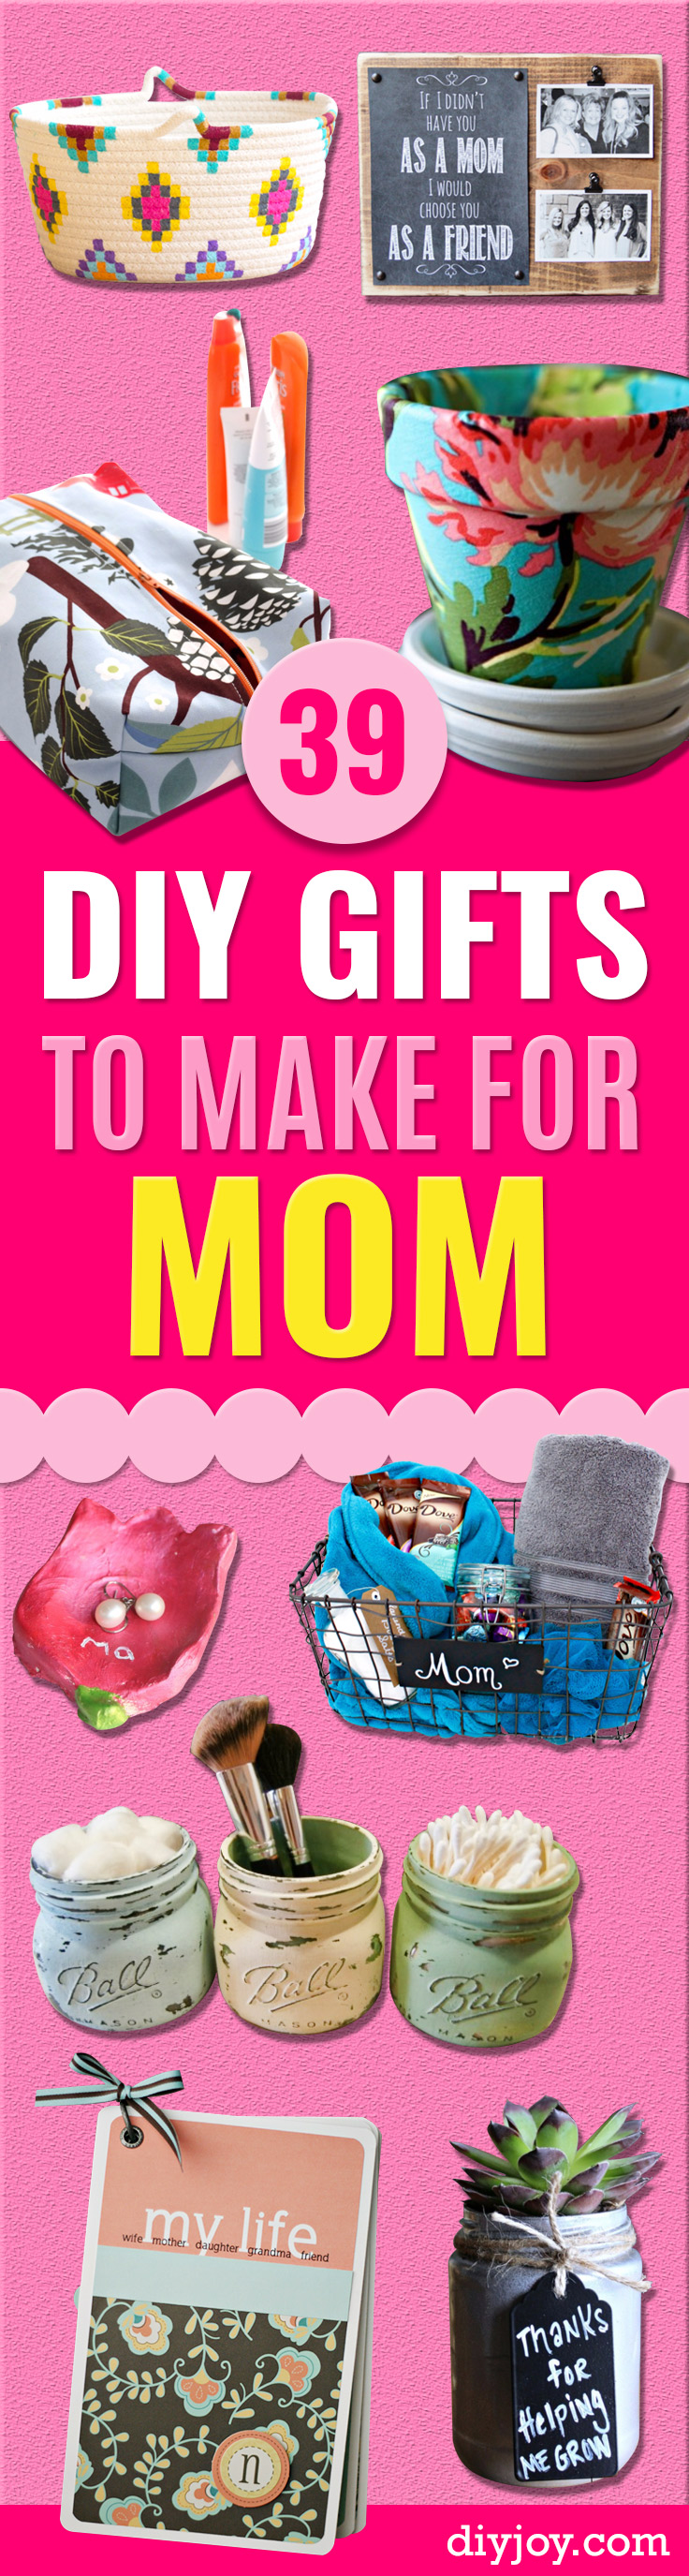 39 creative diy gifts to make for mom Christmas ideas for your mom